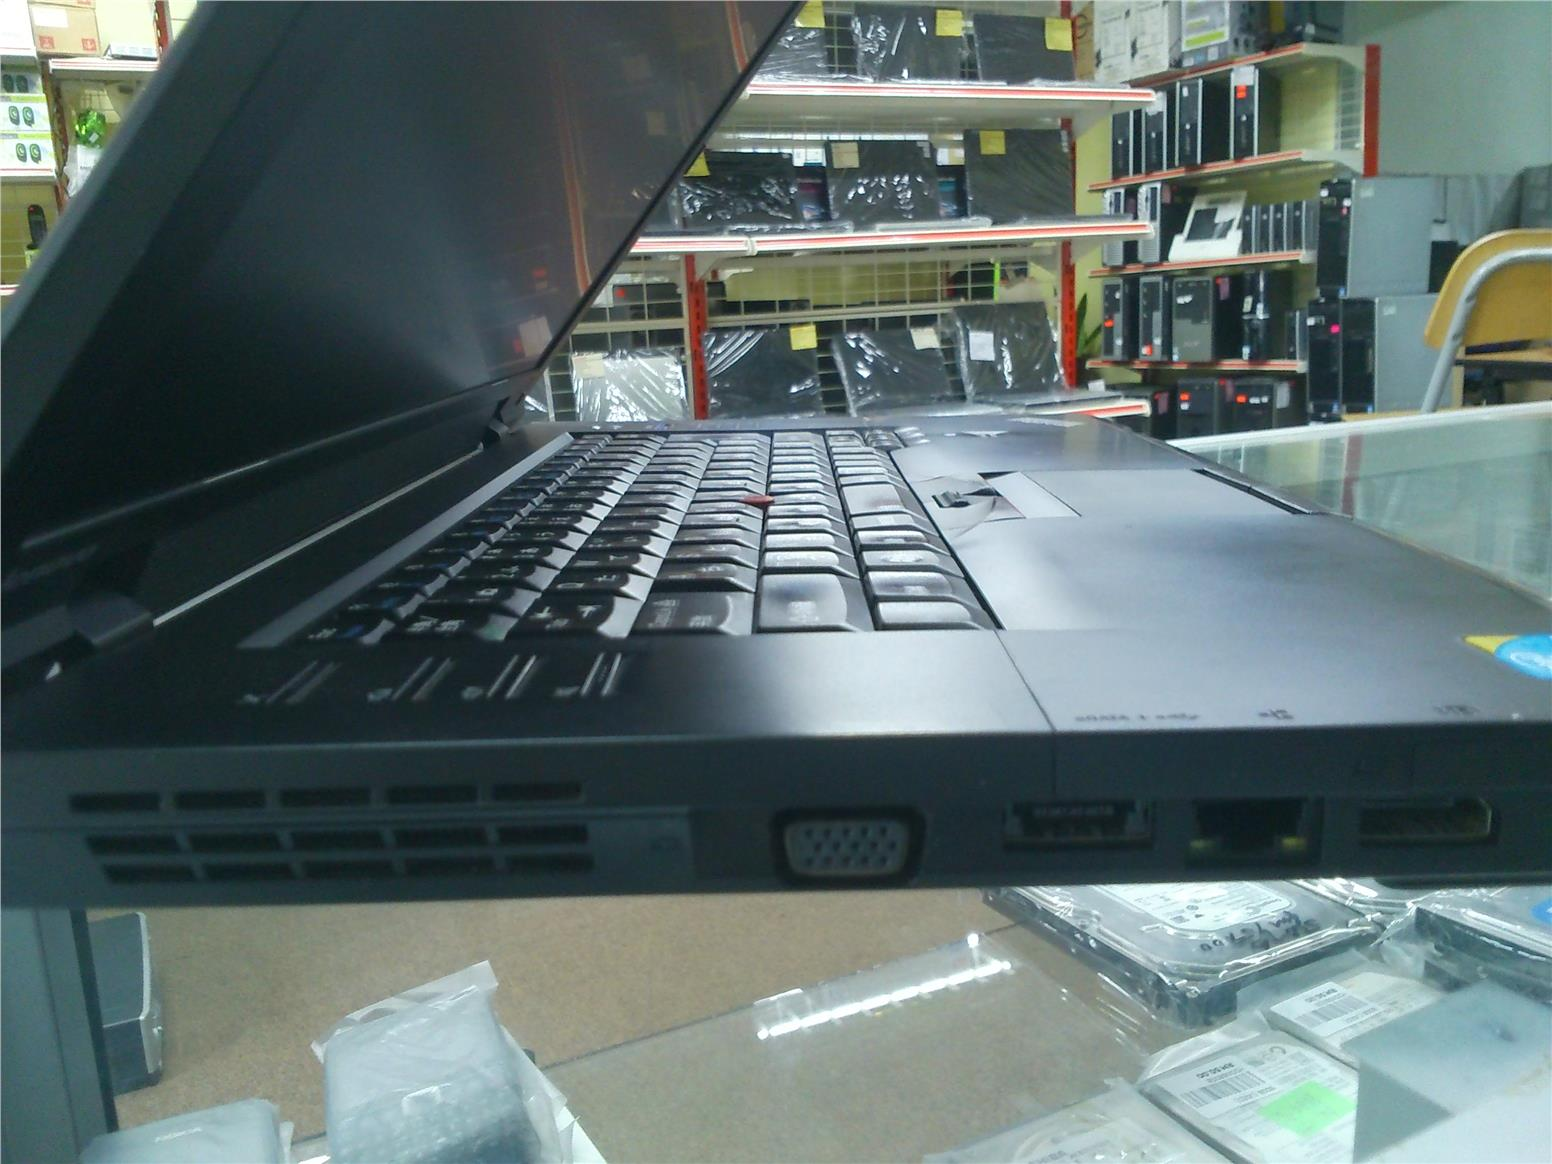 Lenovo L520 Core i5 2nd Gen 4GB DDR3 320GB HDD (Refurbished) (Retail)